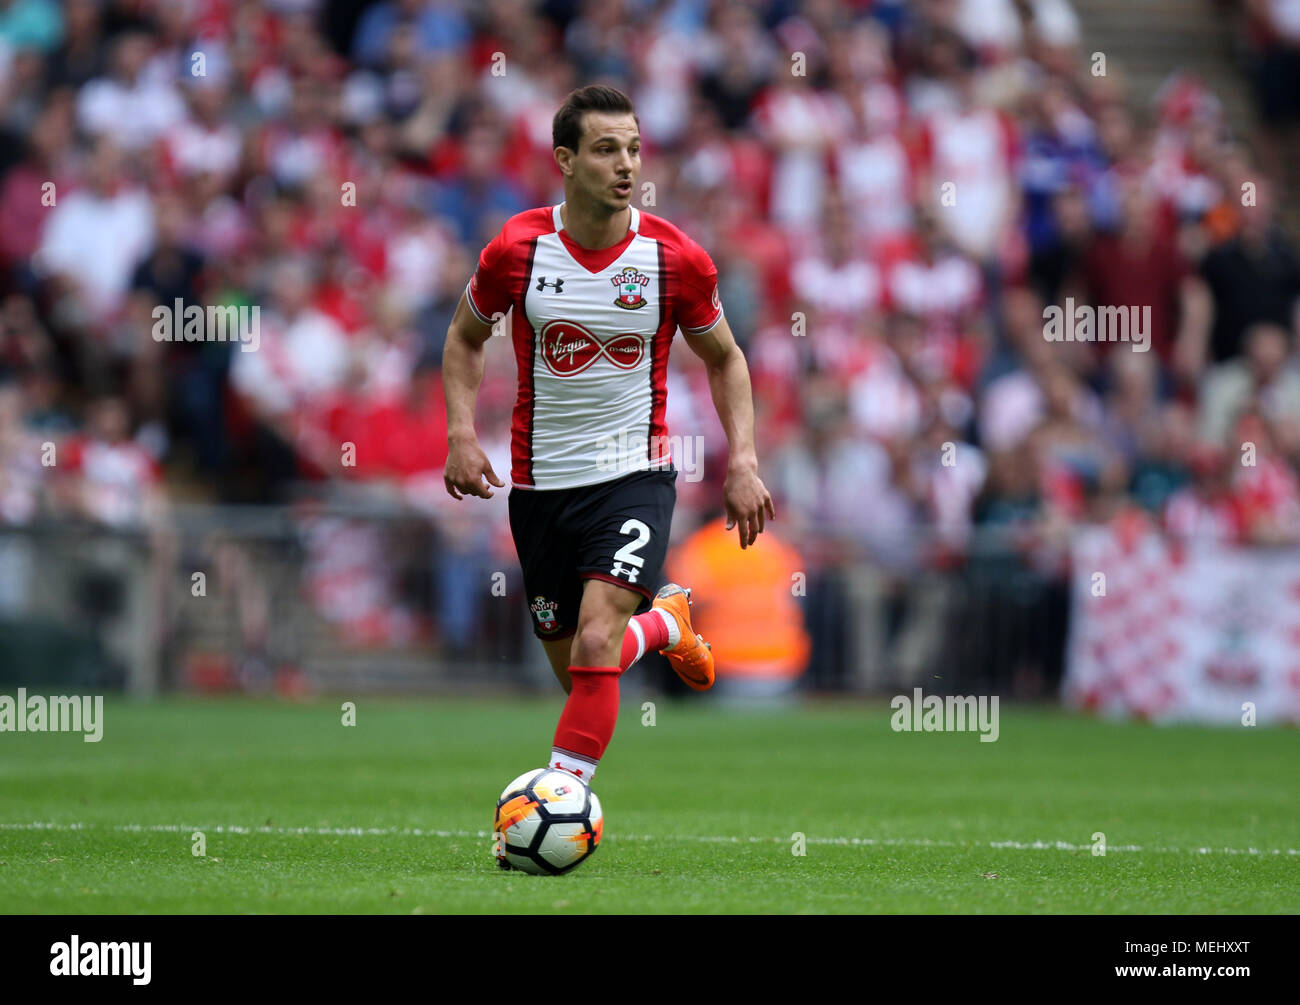 London, UK, 22 April 2018. Cedric (S) at the Emirates FA Cup Semi-Final between Chelsea and Southampton, at Wembley Stadium, London, on April 22, 2018. **THIS PICTURE IS FOR EDITORIAL USE ONLY** Credit: Paul Marriott/Alamy Live News Stock Photo